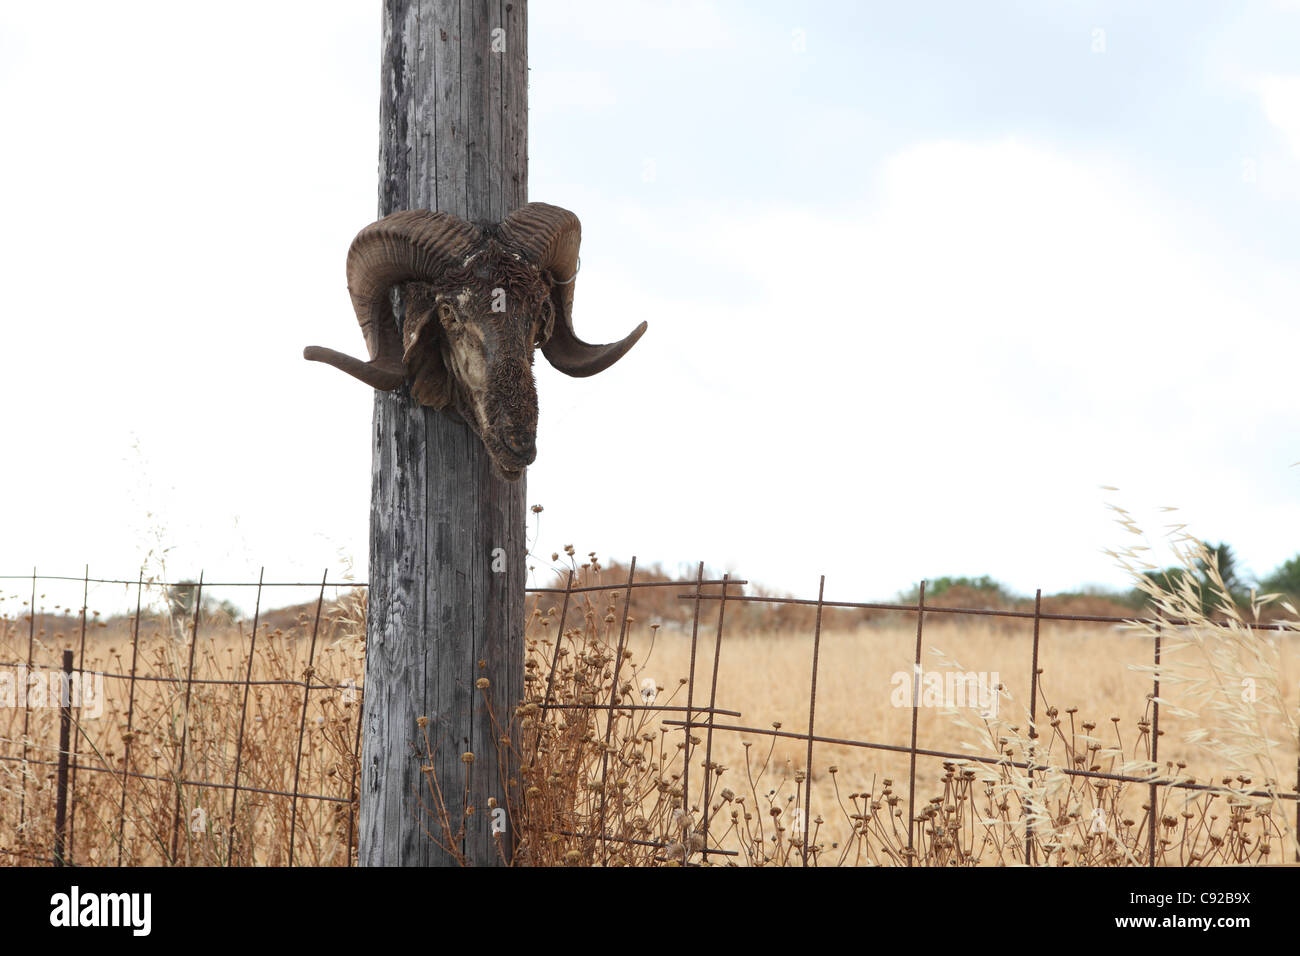 It is not unusual to find a goat skull with horns placed on fences ...